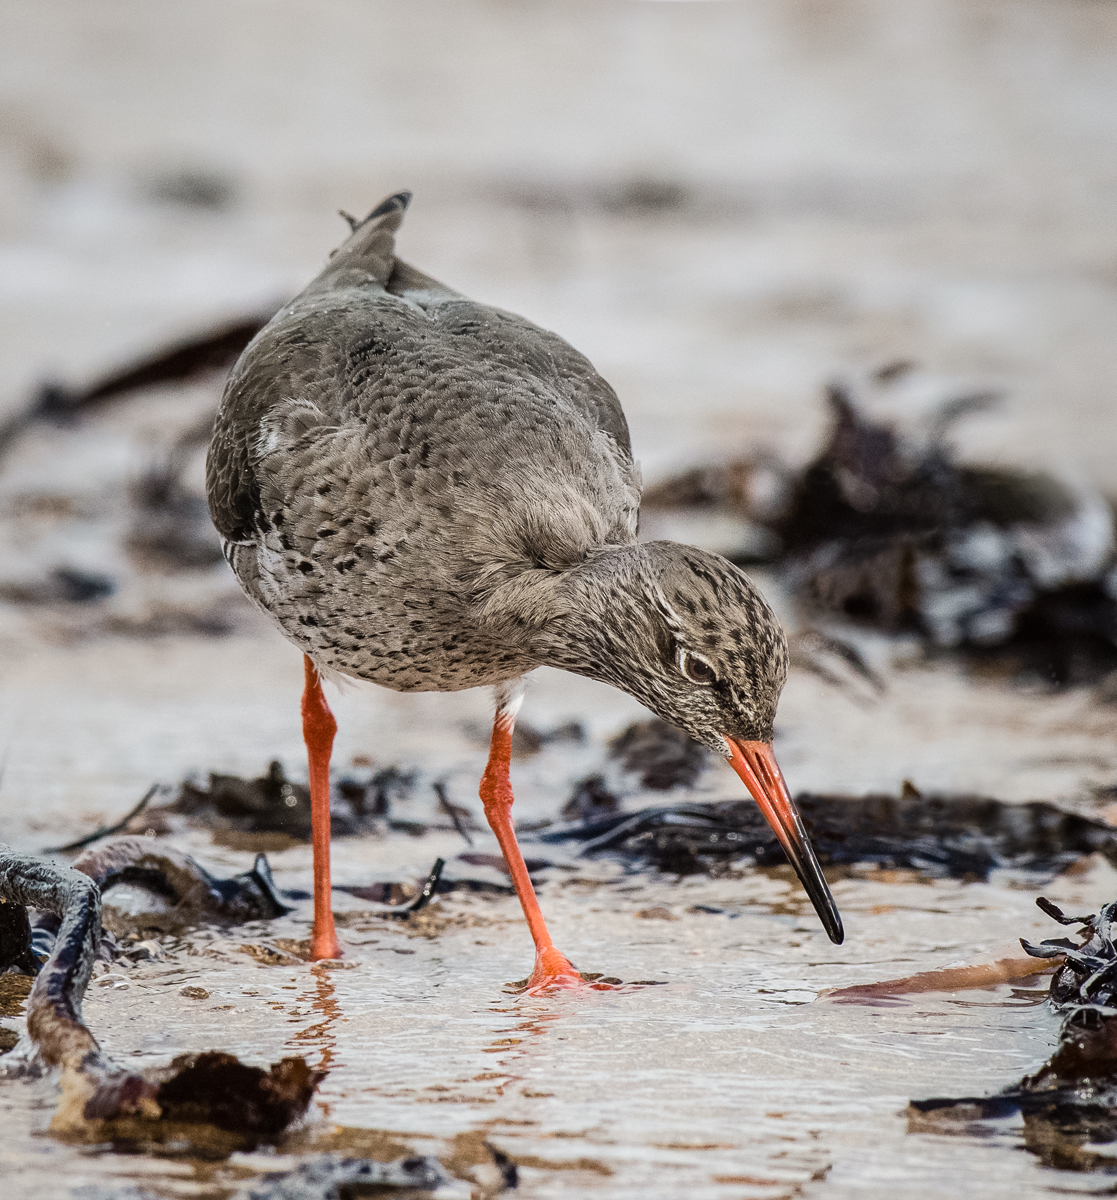 Redshank foraging